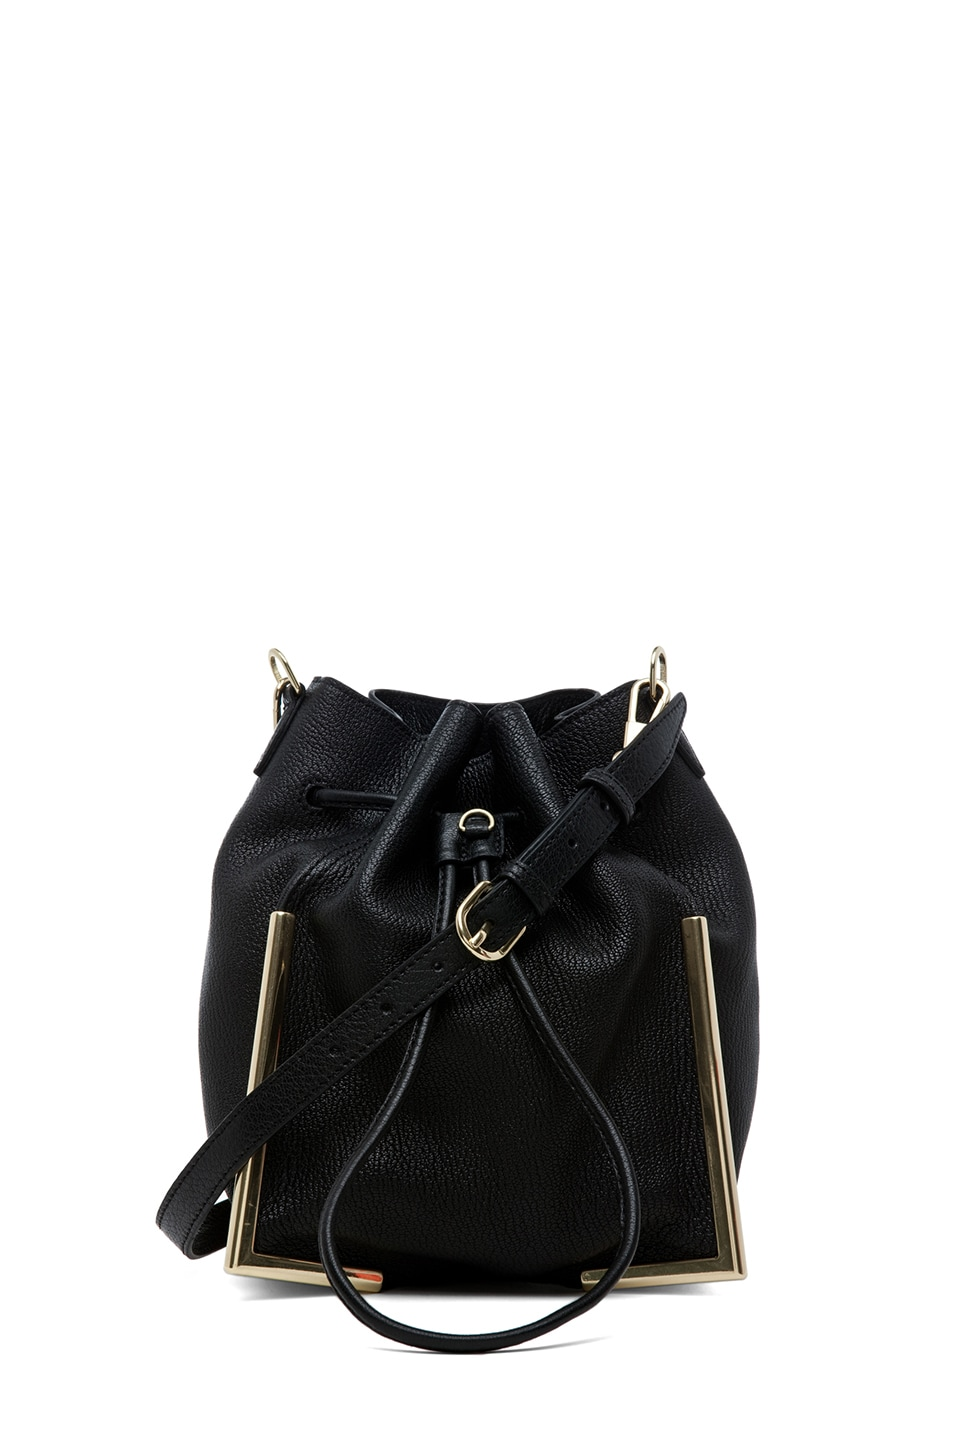 Image 1 of 3.1 phillip lim Scout Small Drawstring Lux Crossbody in Black